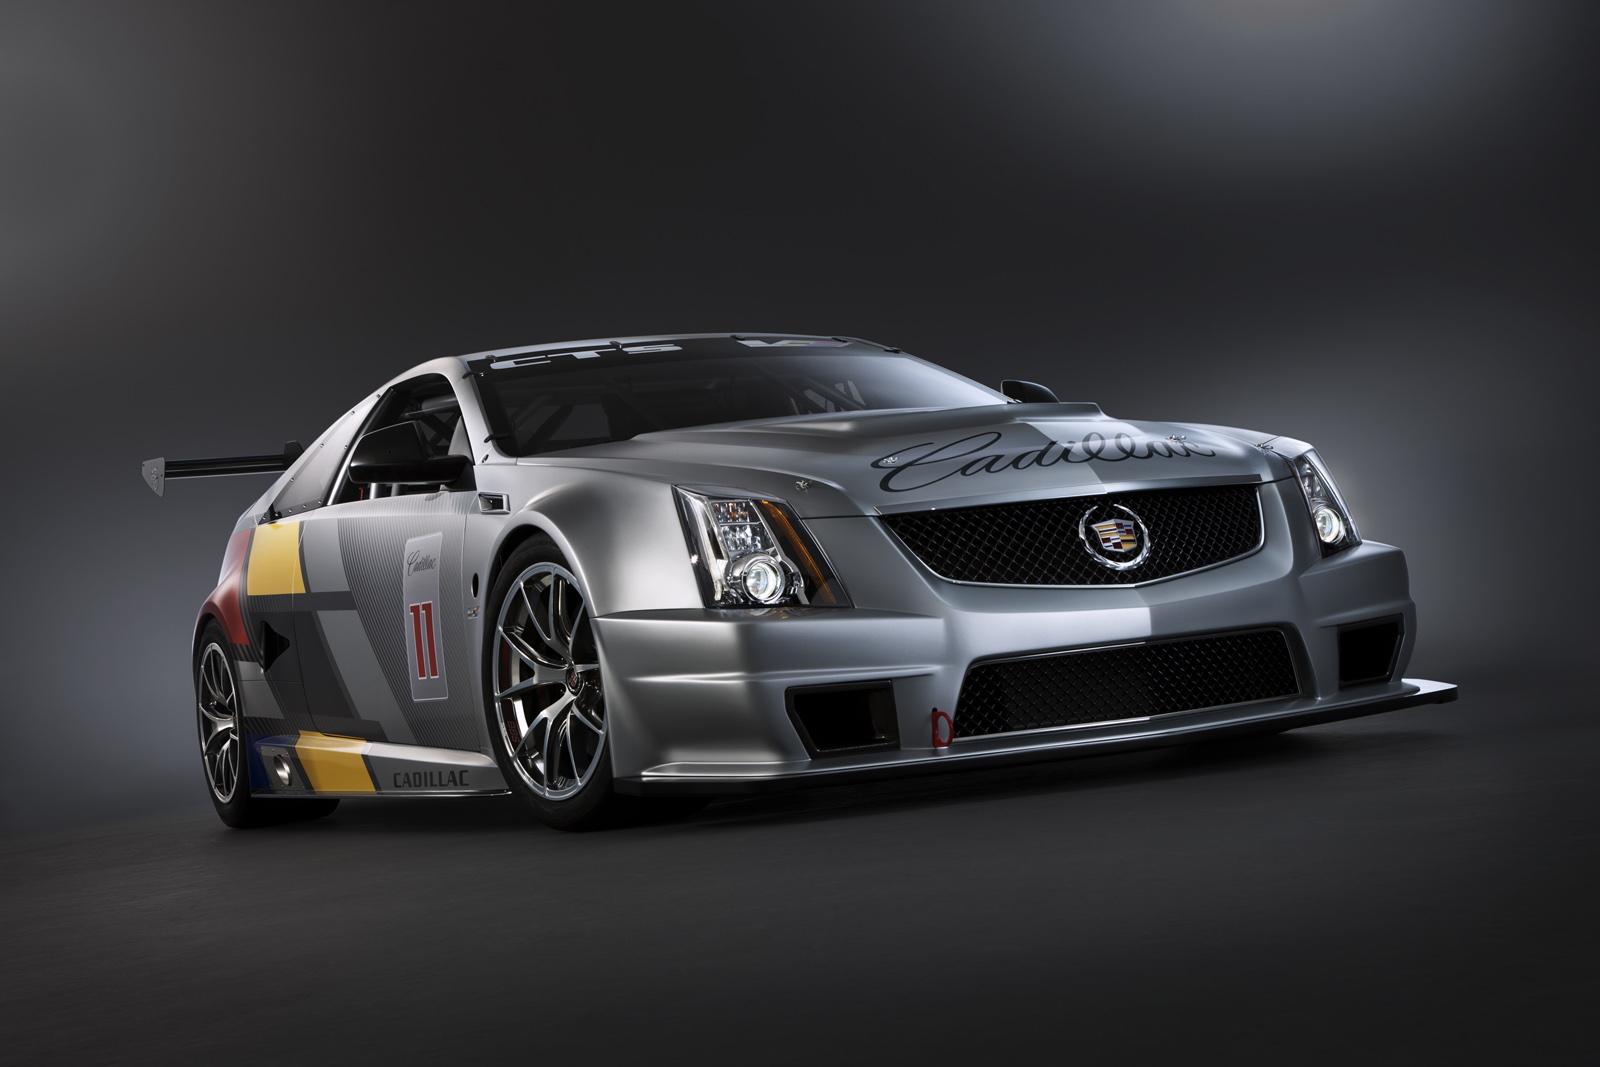 2011 cts v coupe racecar first official images released autoevolution. Black Bedroom Furniture Sets. Home Design Ideas